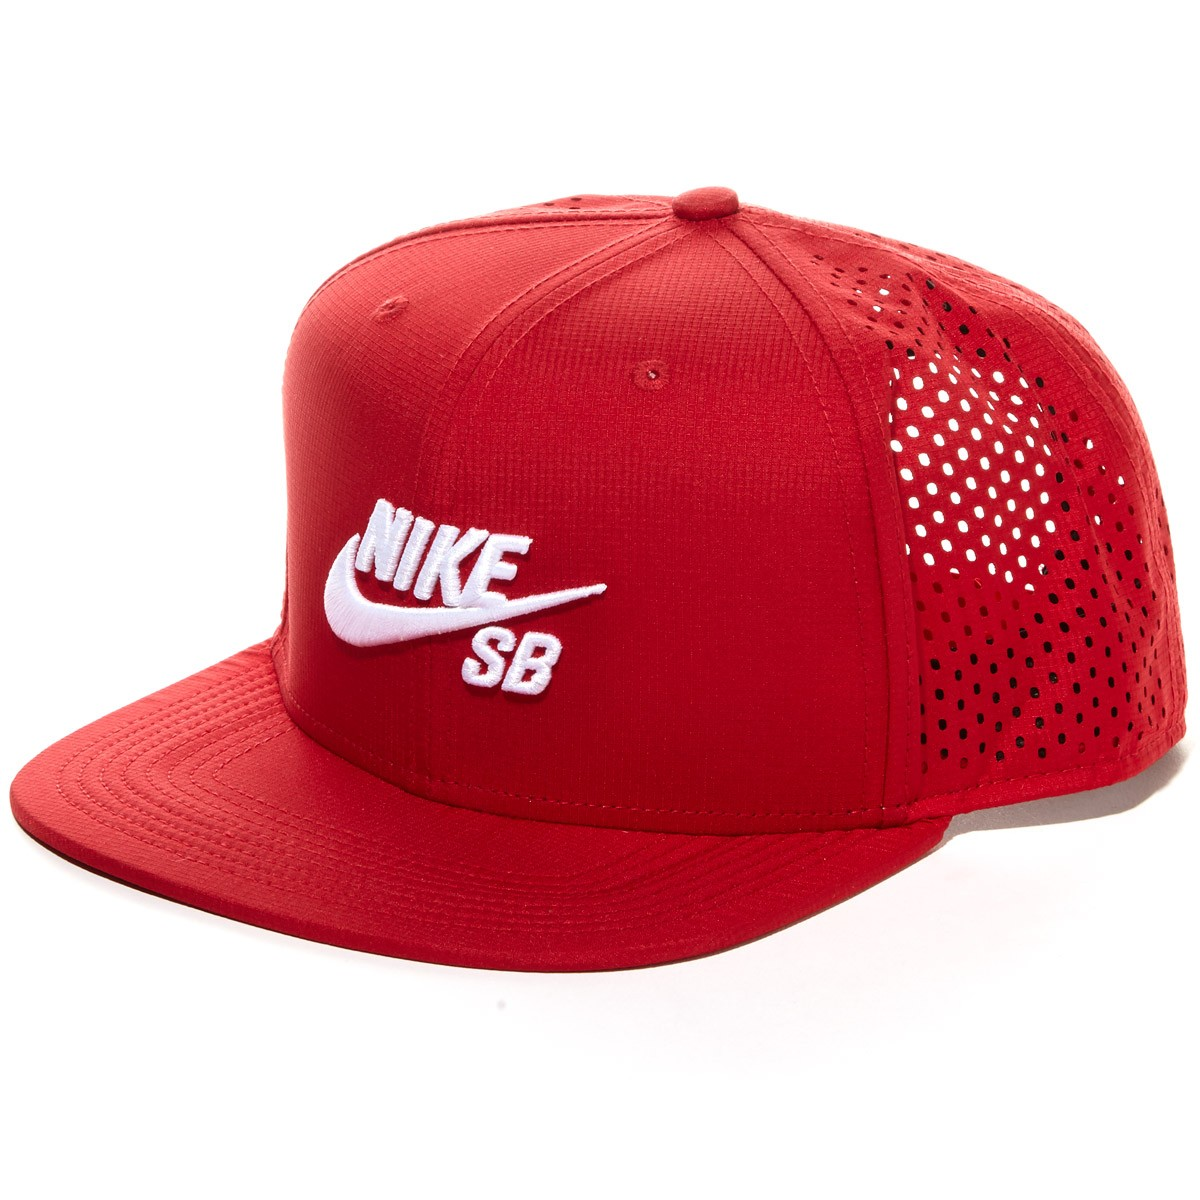 Nike SB Performance Hat - Red/Red/Black